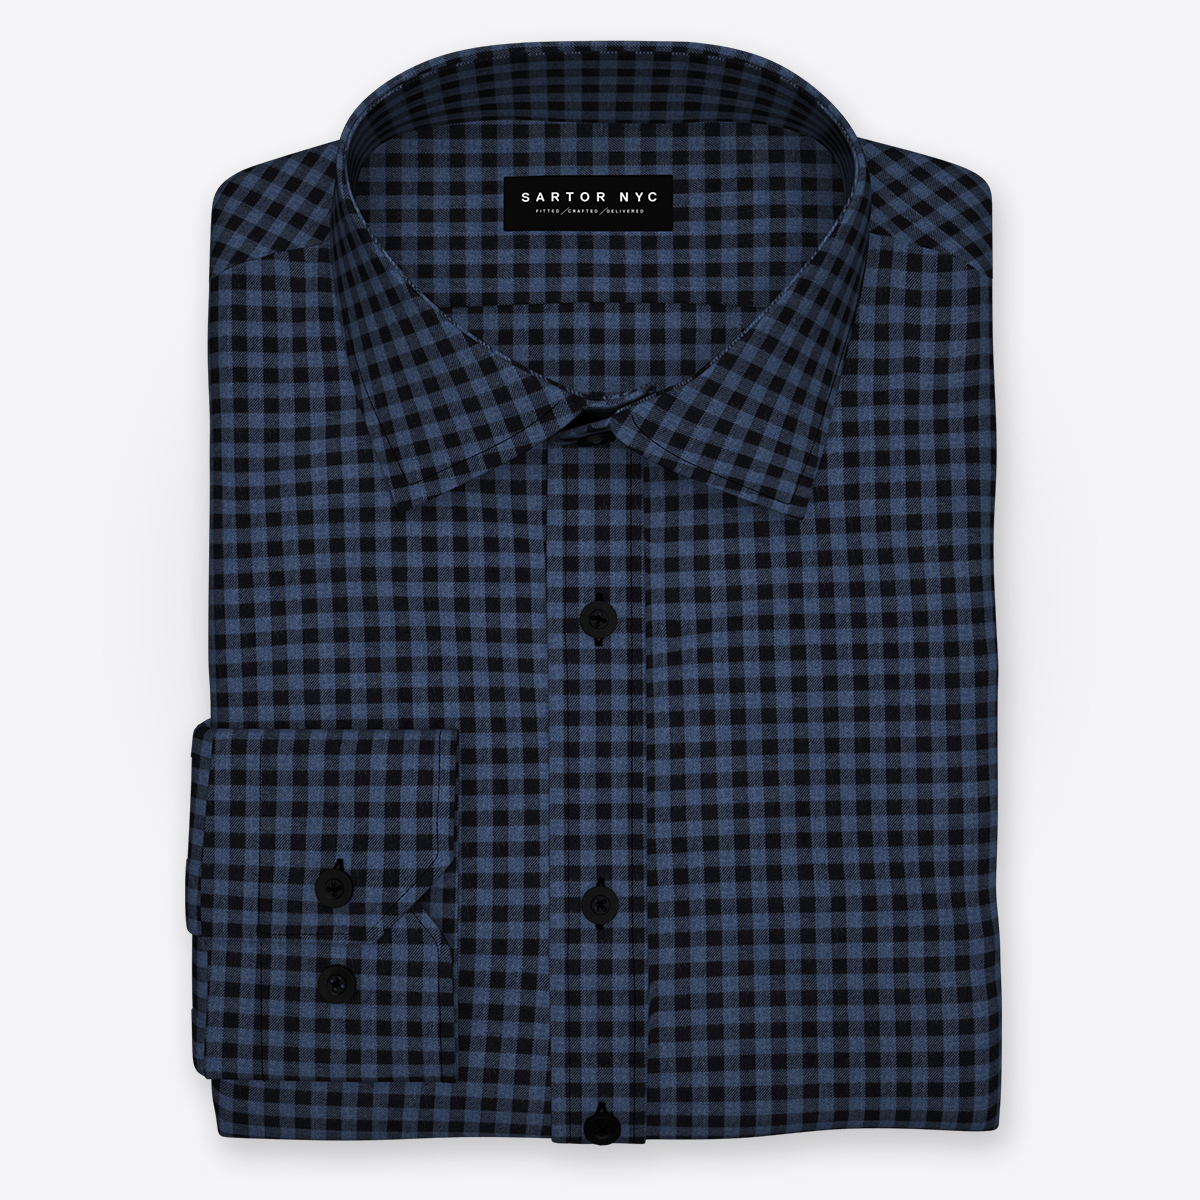 3108 16 mendoza flanela blue black gingham sq  huge